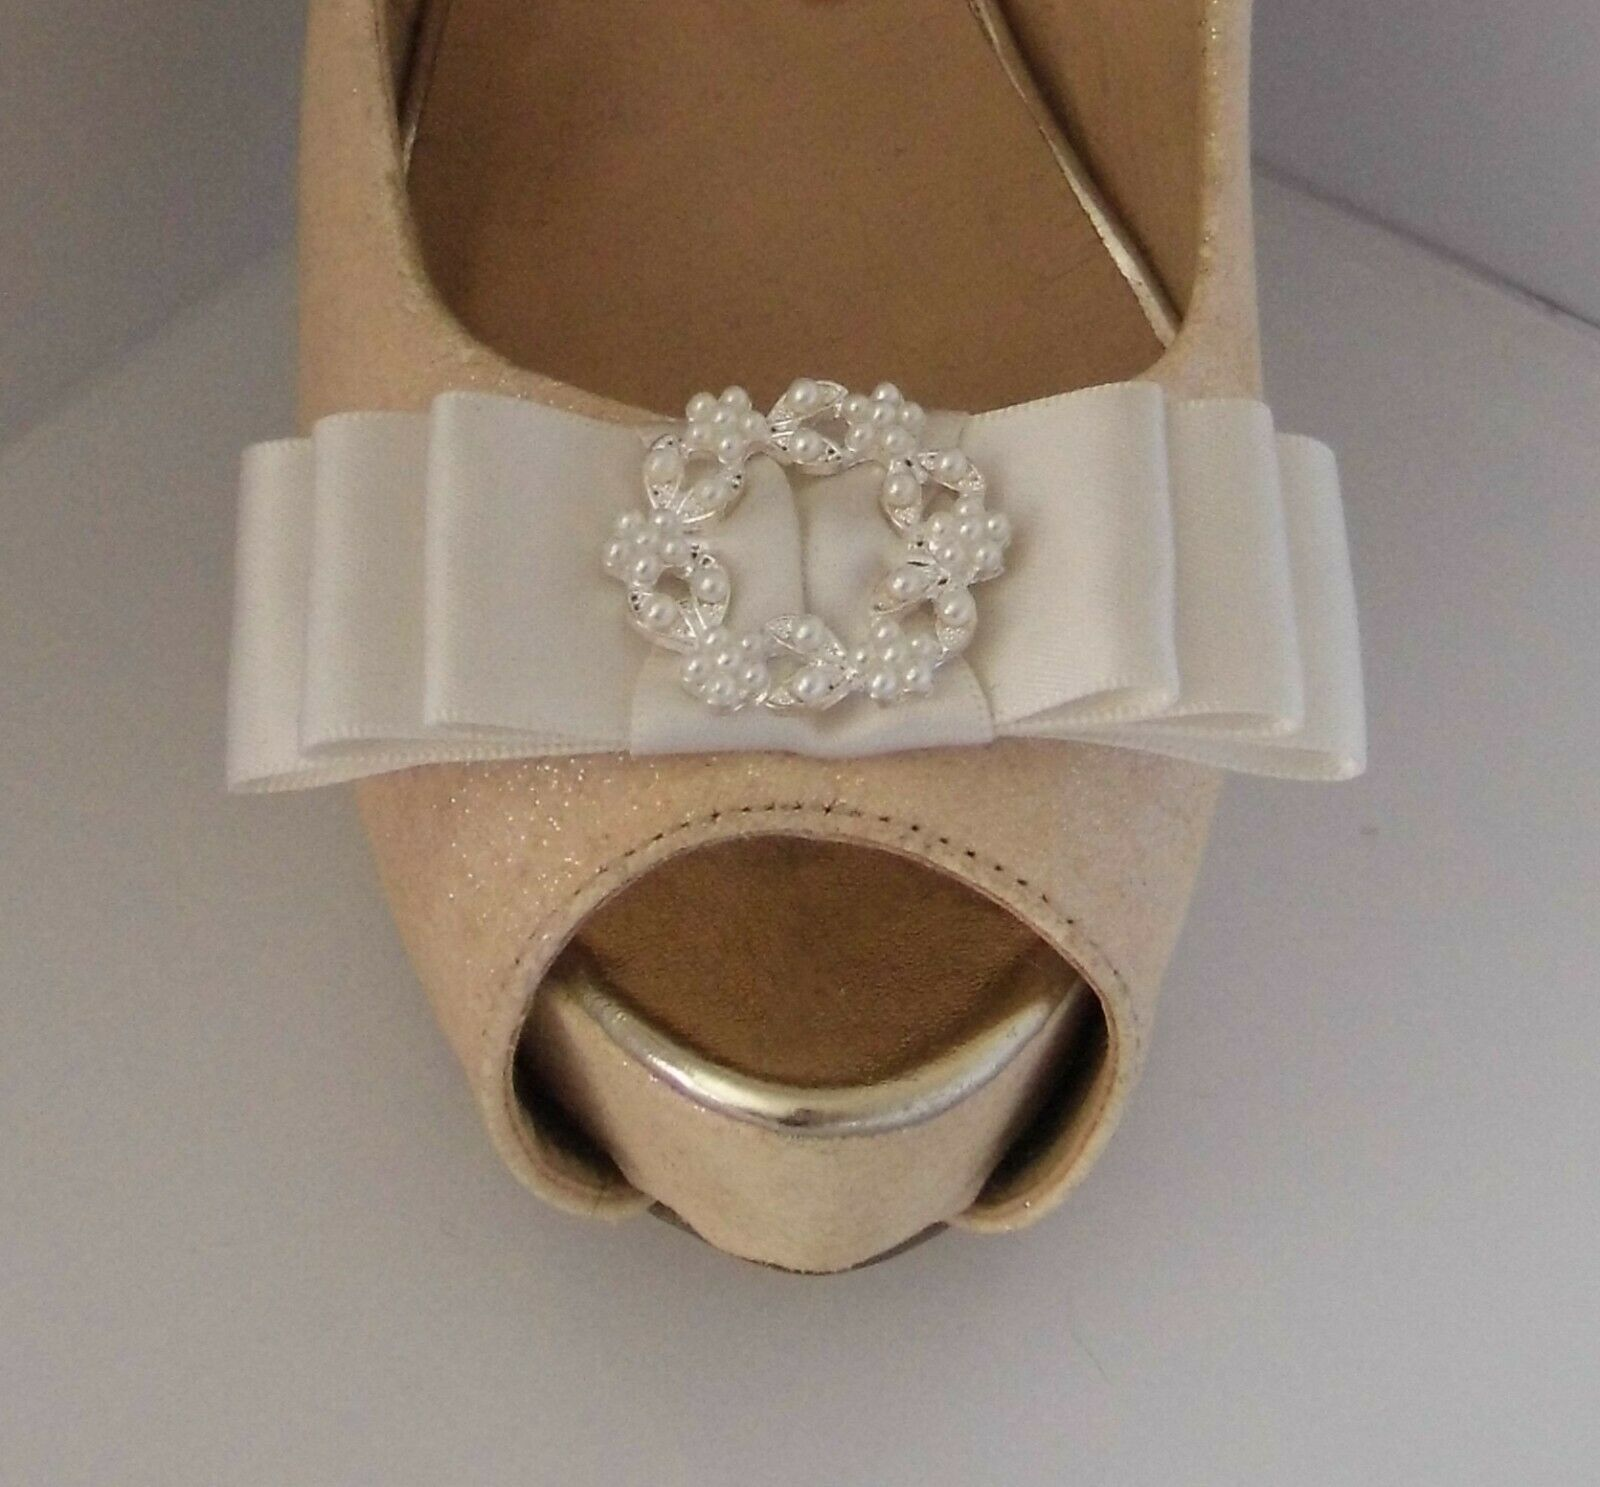 2 Ivory Satin Bow Clips for Shoes with Fine Pearl Buckle Centre